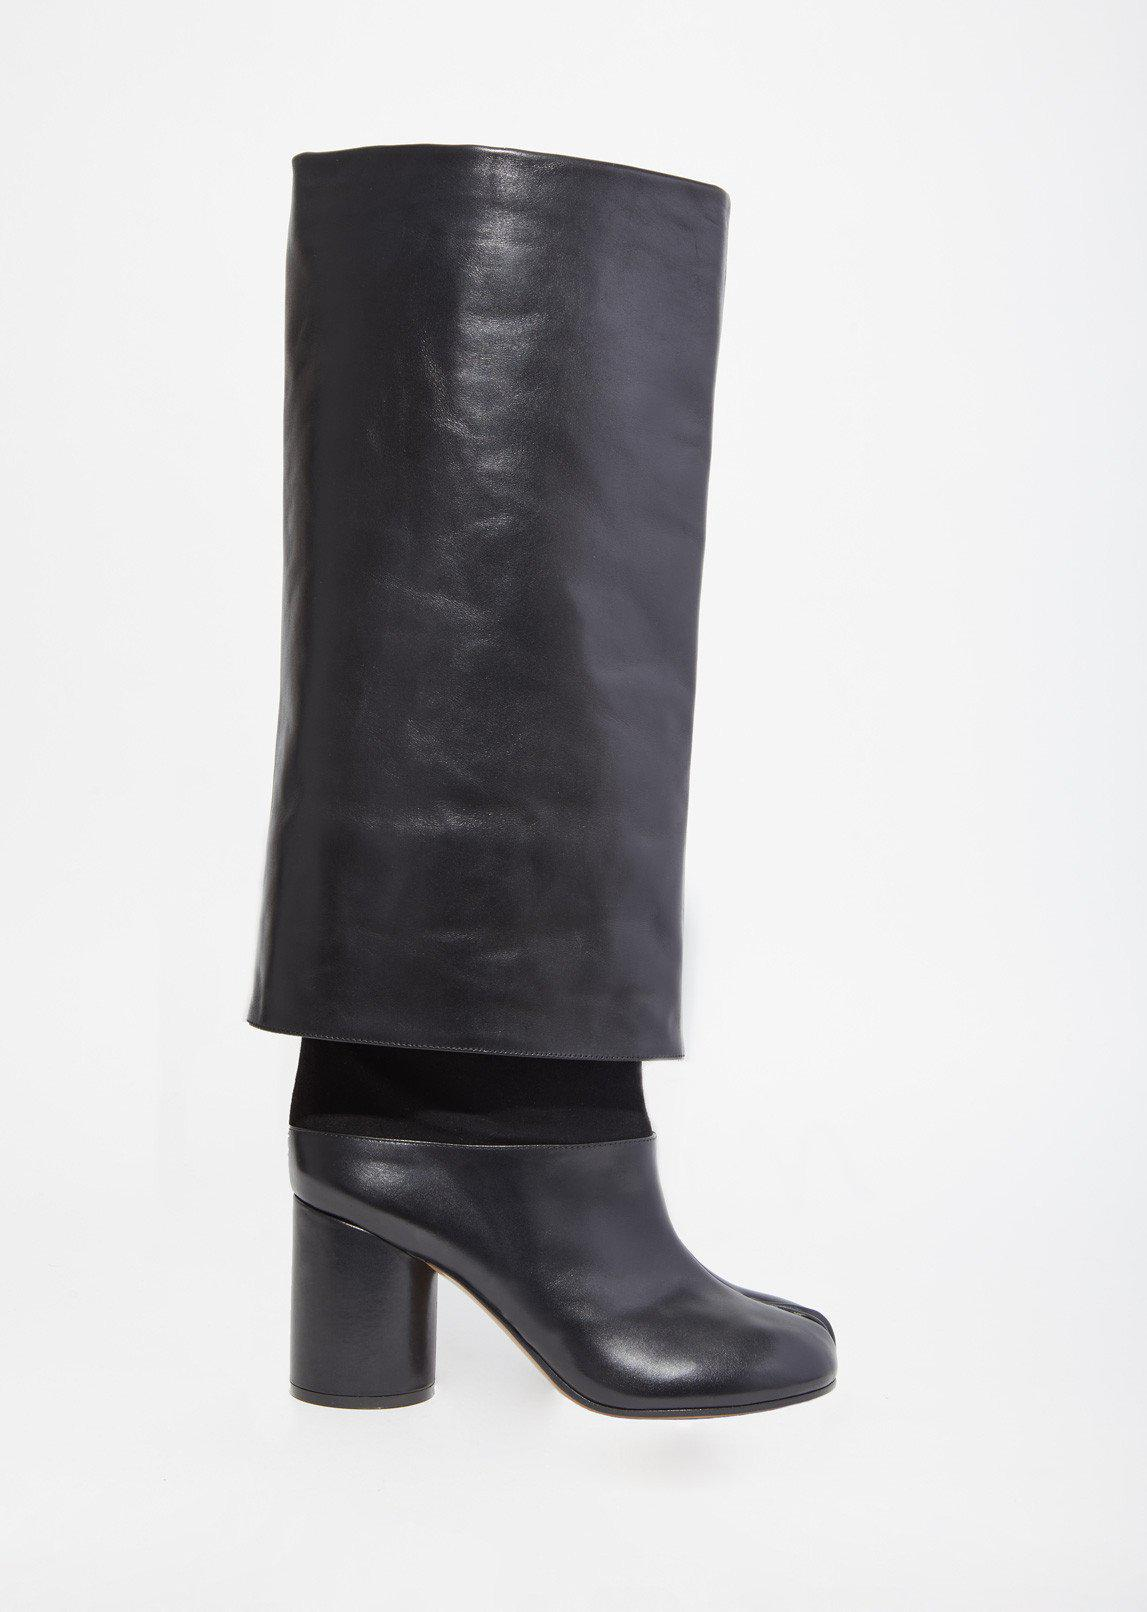 tall Mex boots - Black Maison Martin Margiela Outlet Discounts sDhMa2